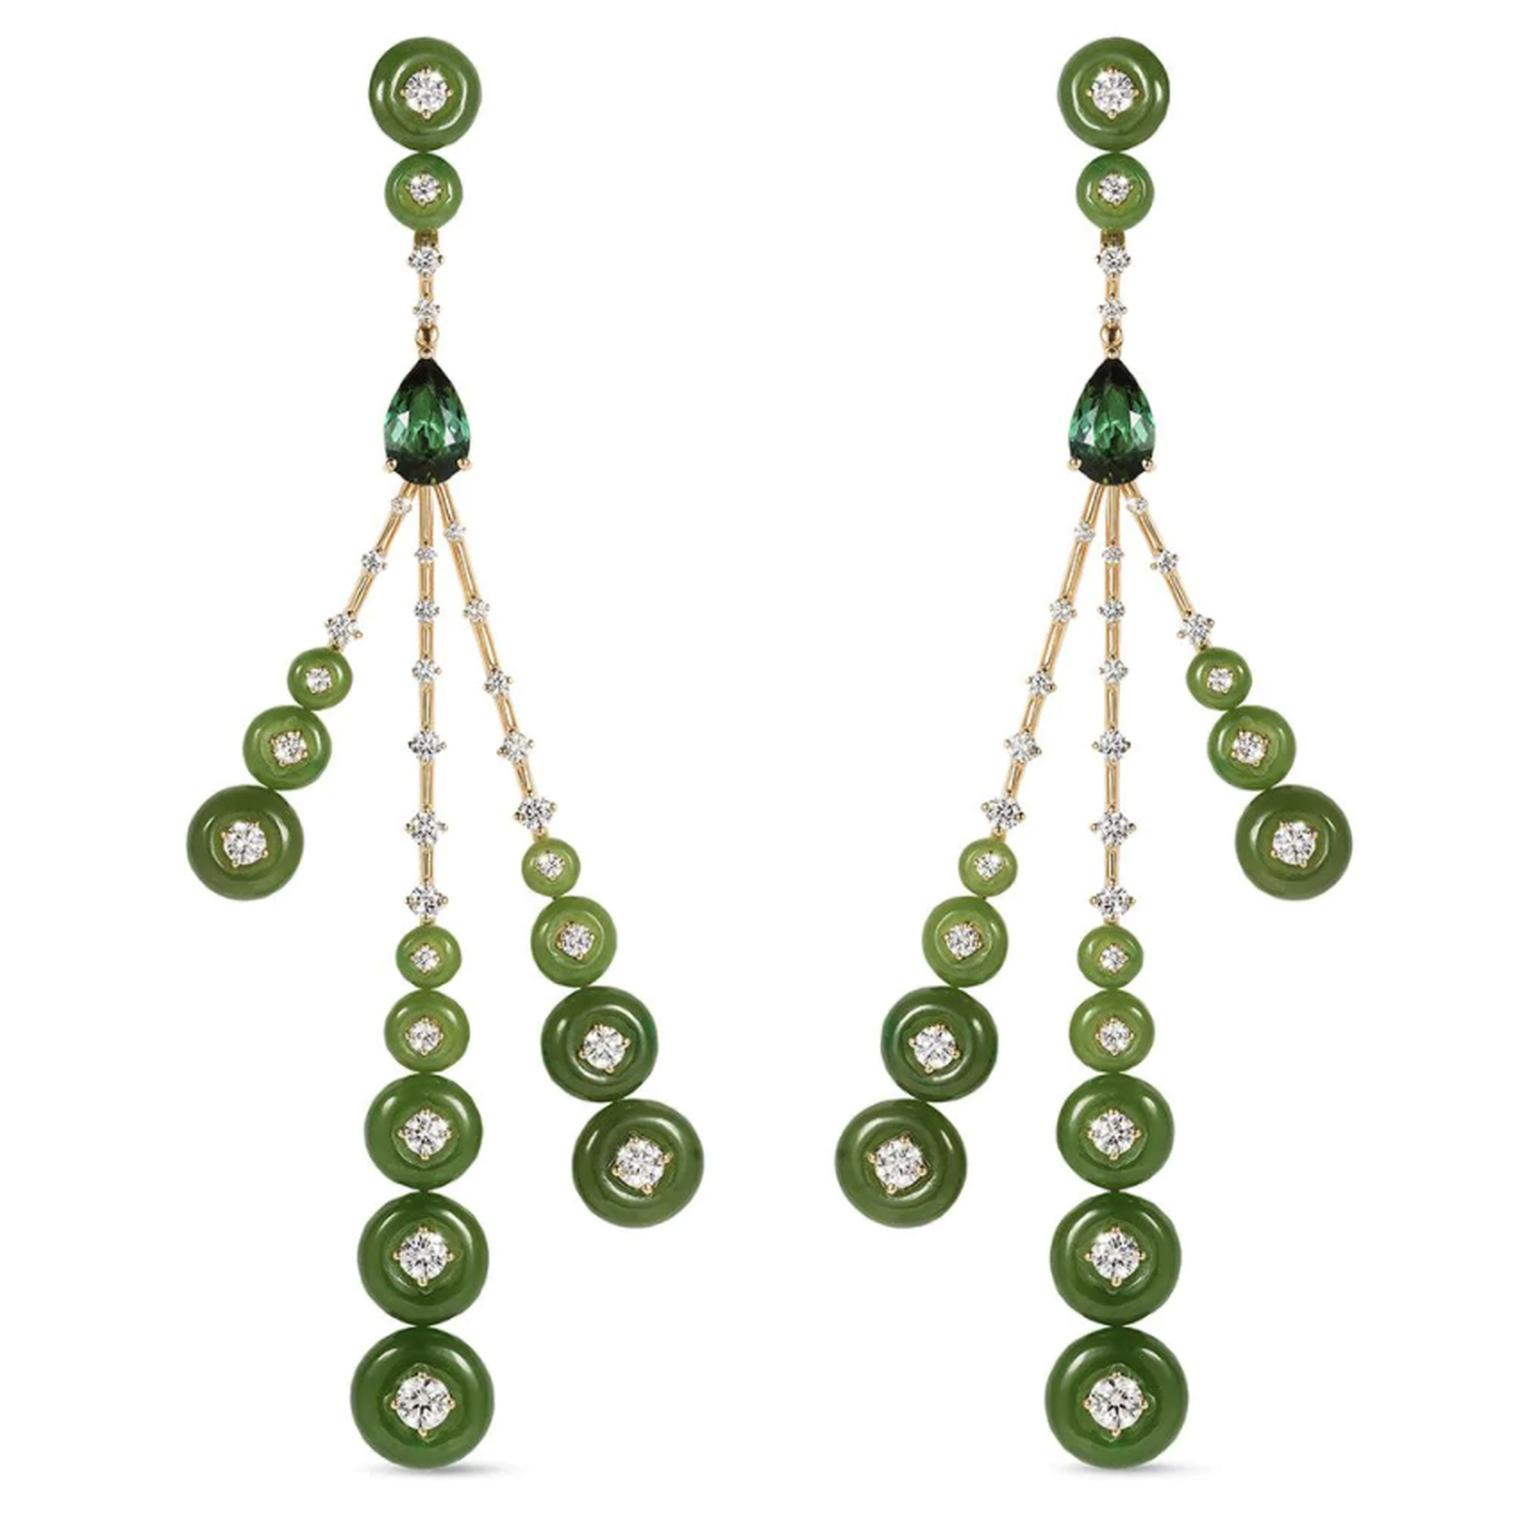 Jade earrings by Fernando Jorge